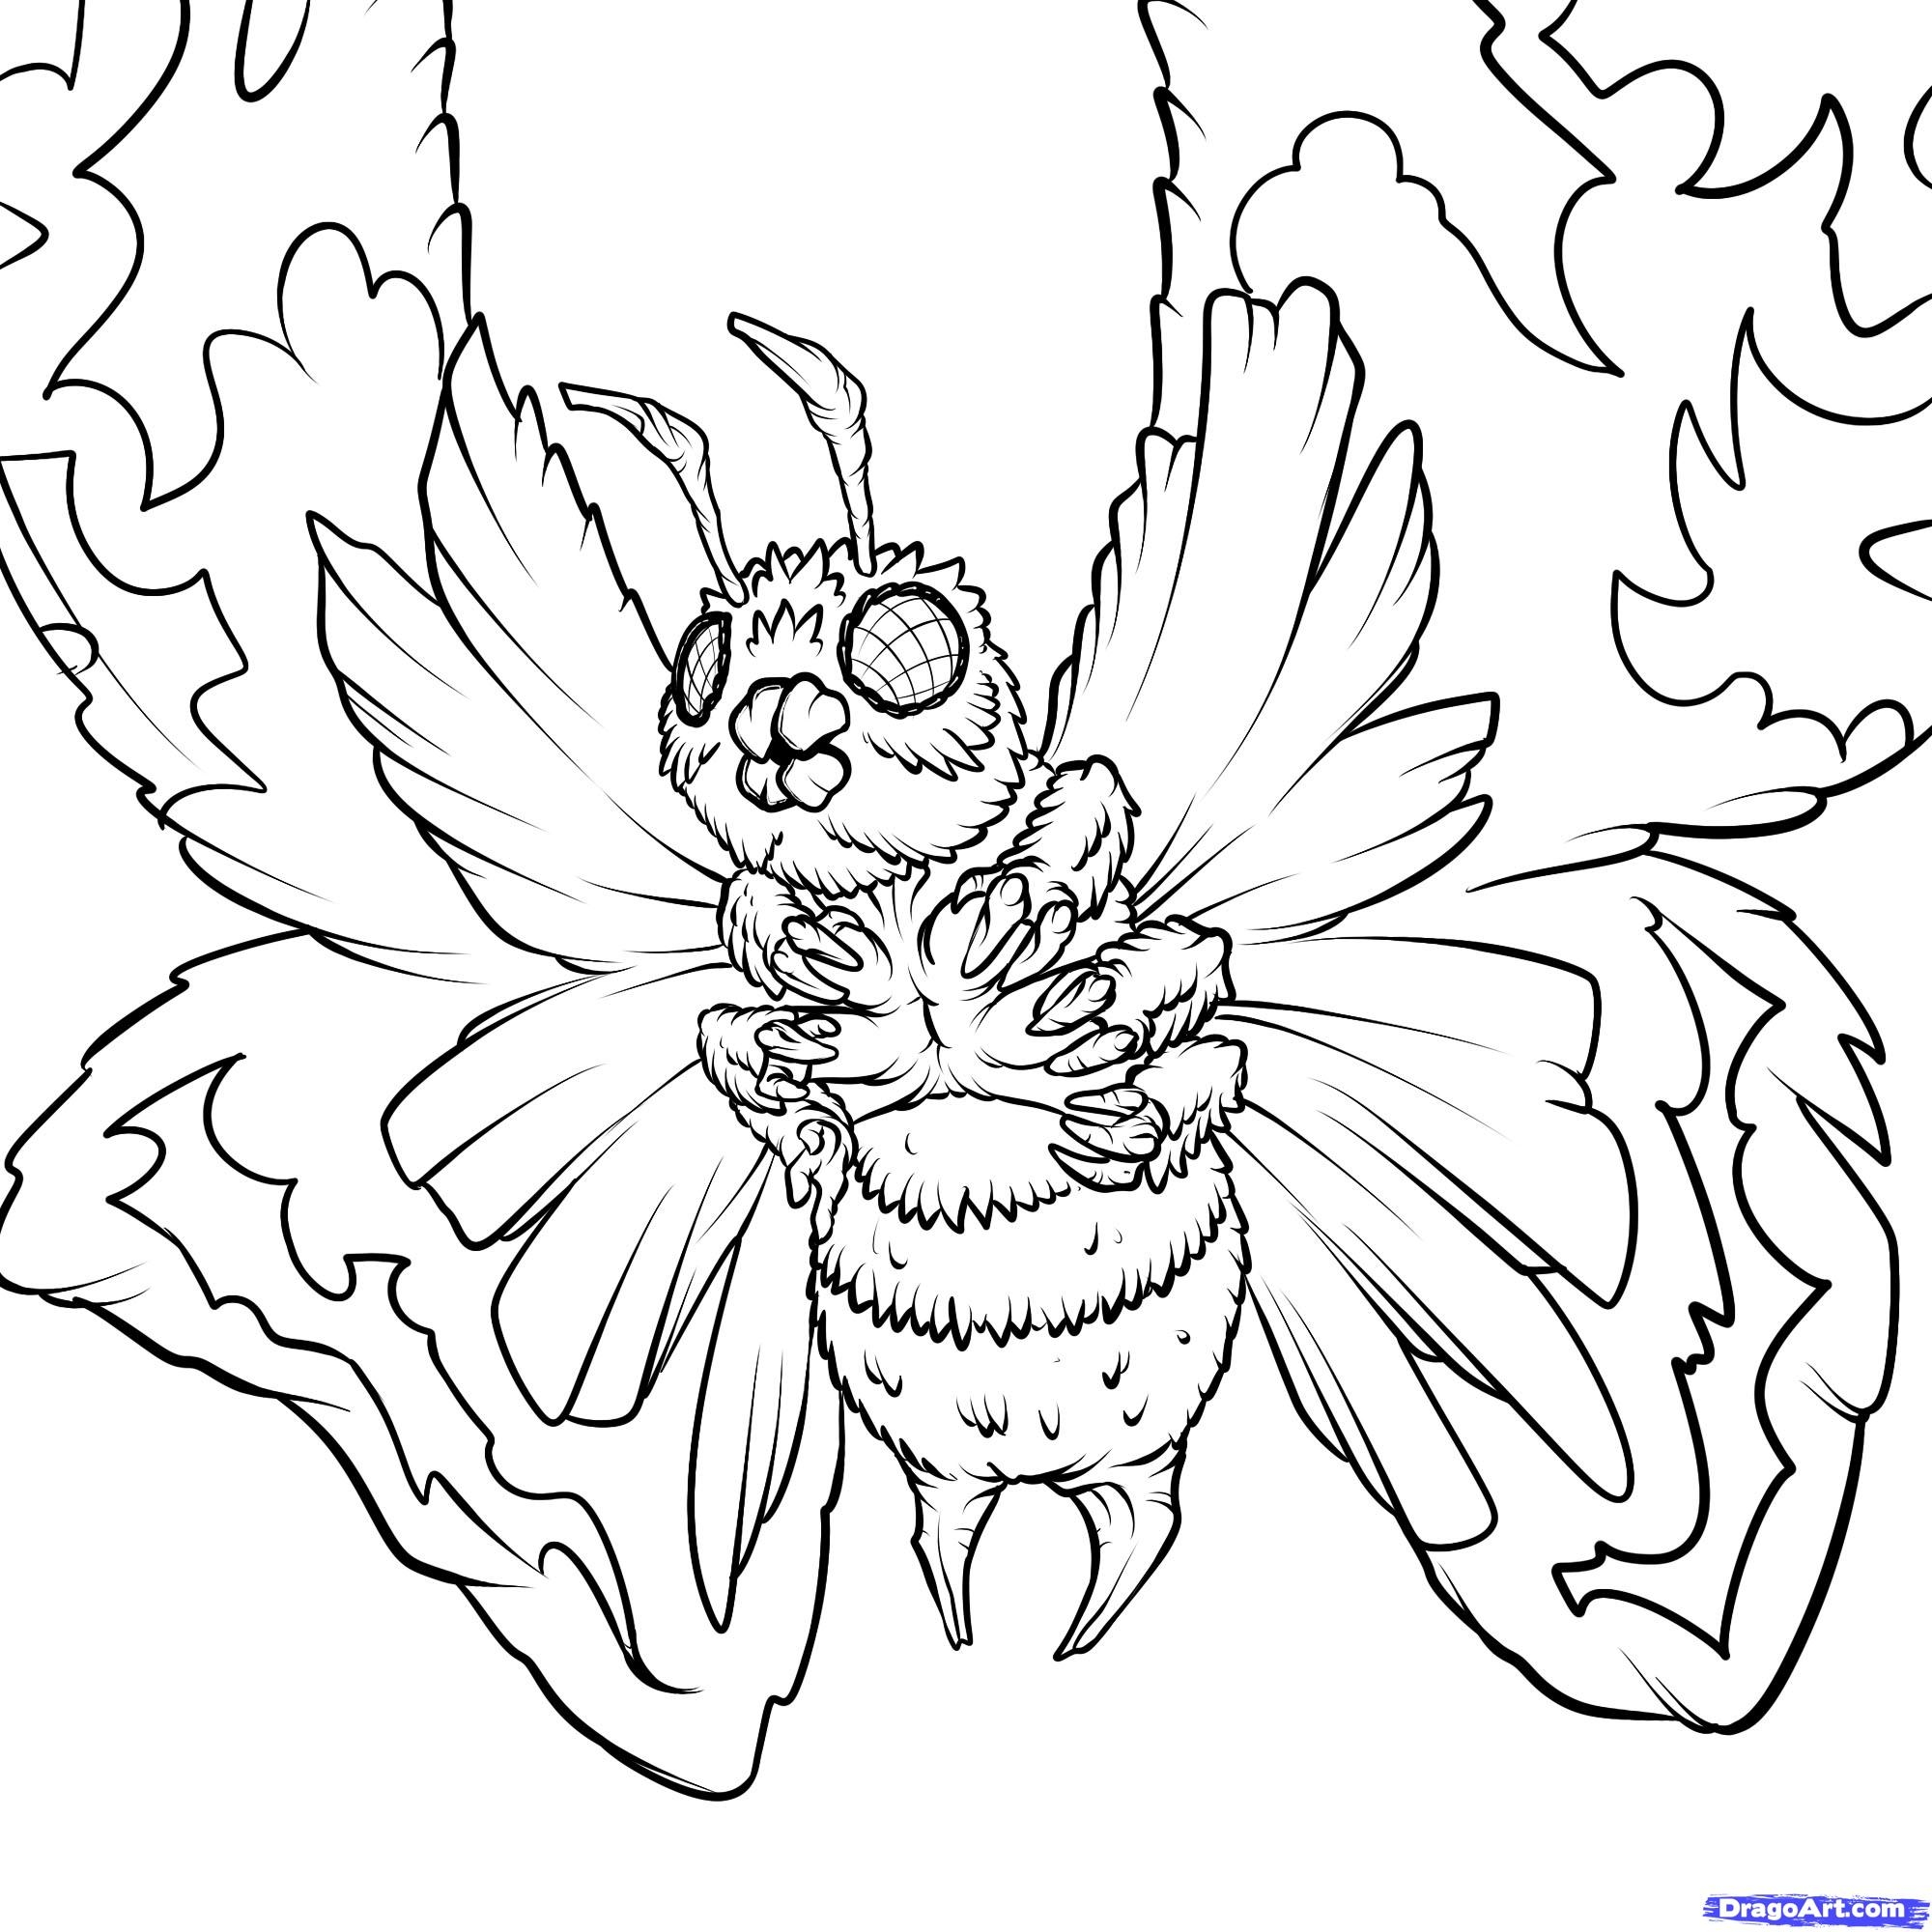 2000x2000 Godzilla Coloring Pages Coloringsuite Download